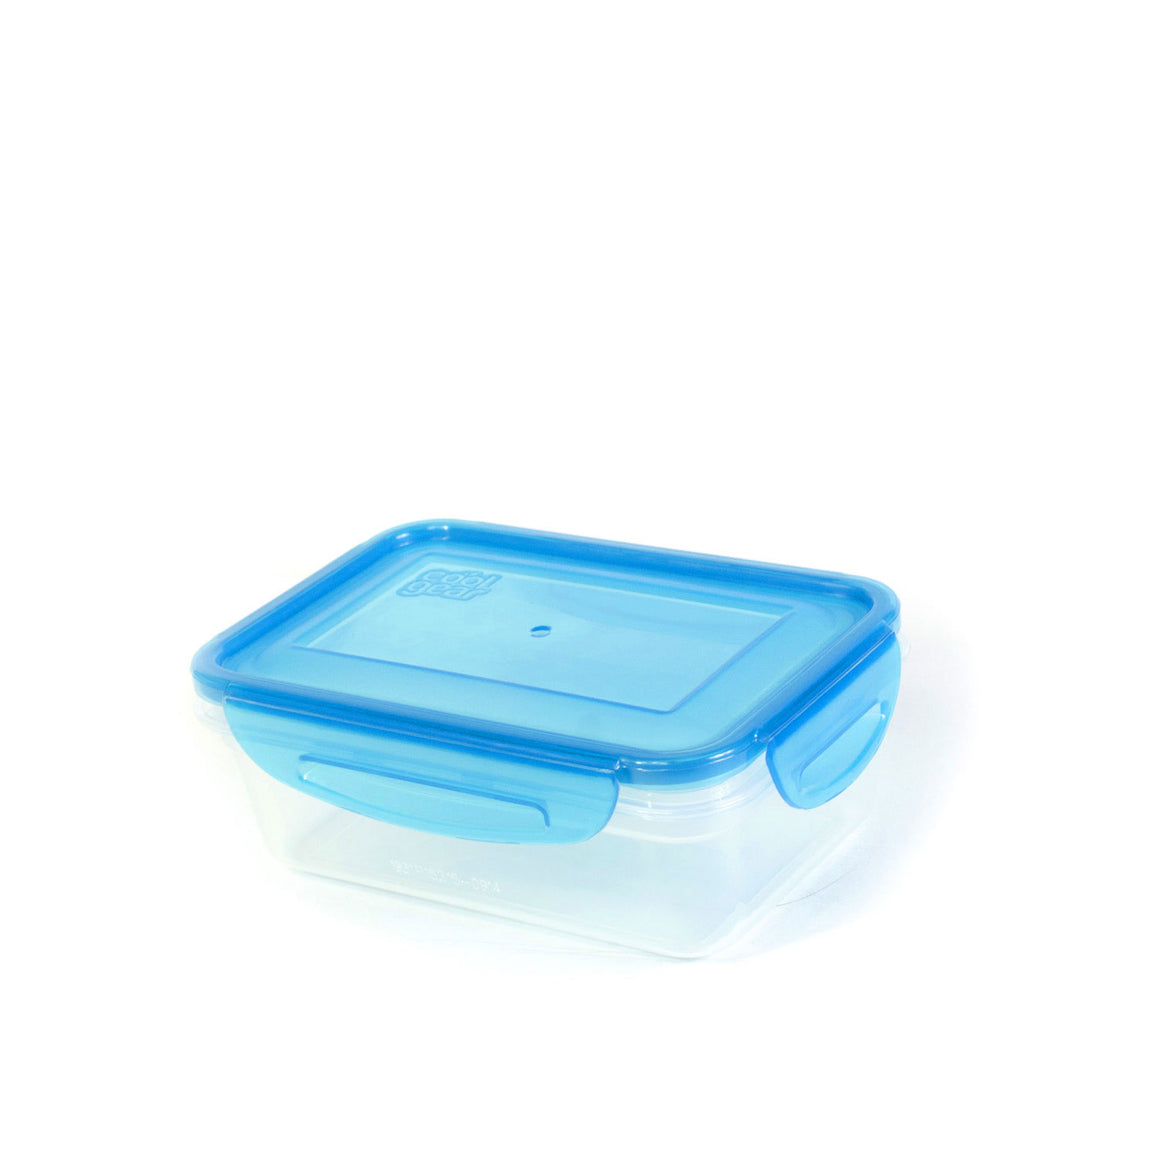 Blue 17.9 Oz Snap N Seal Small Rectangle Food Container at Cool Gear Food Containers